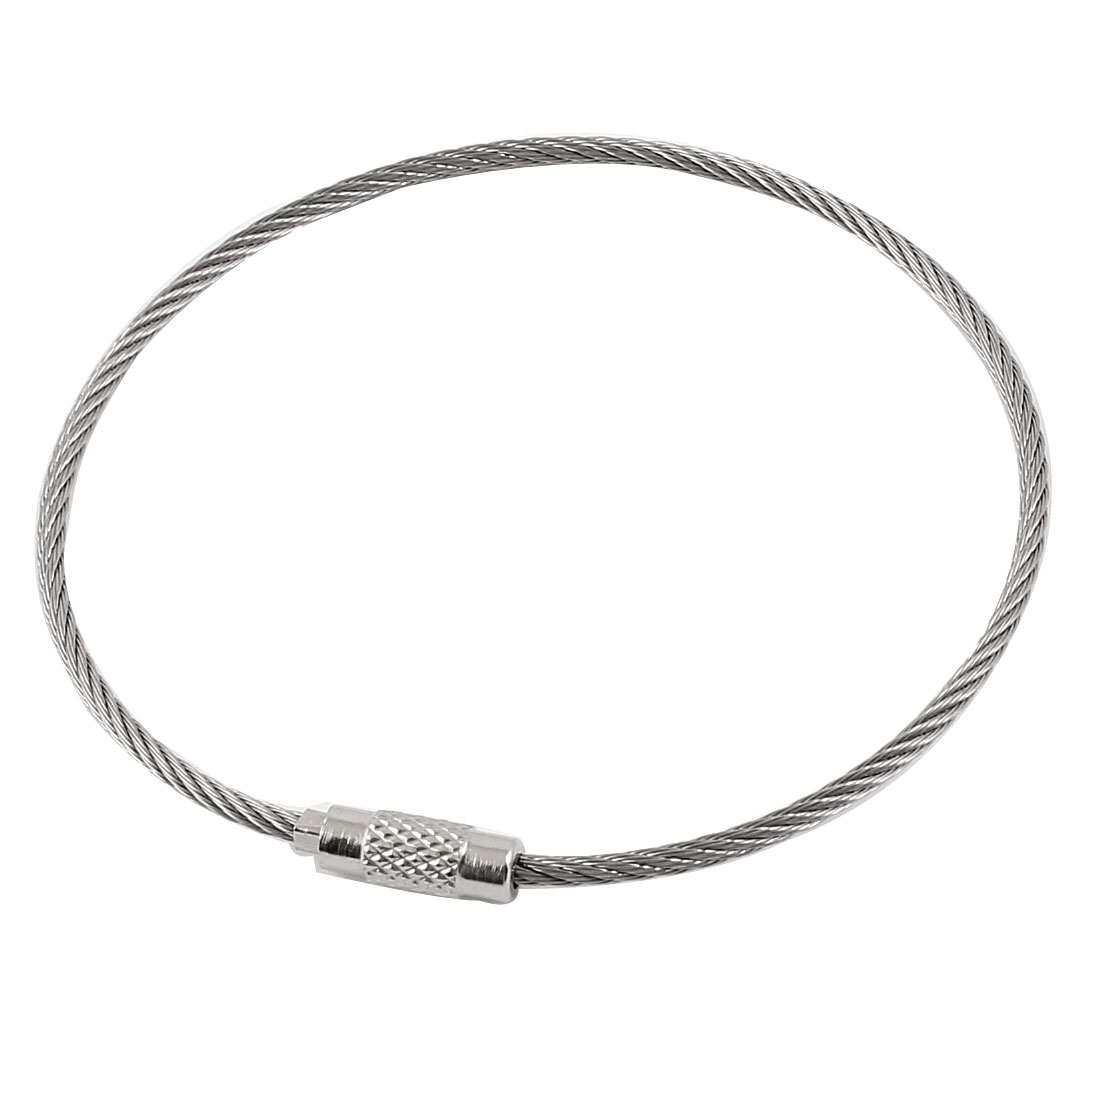 2mm Dia Stainless Steel Wire Ring Rope Keyring Cable 20cm Long